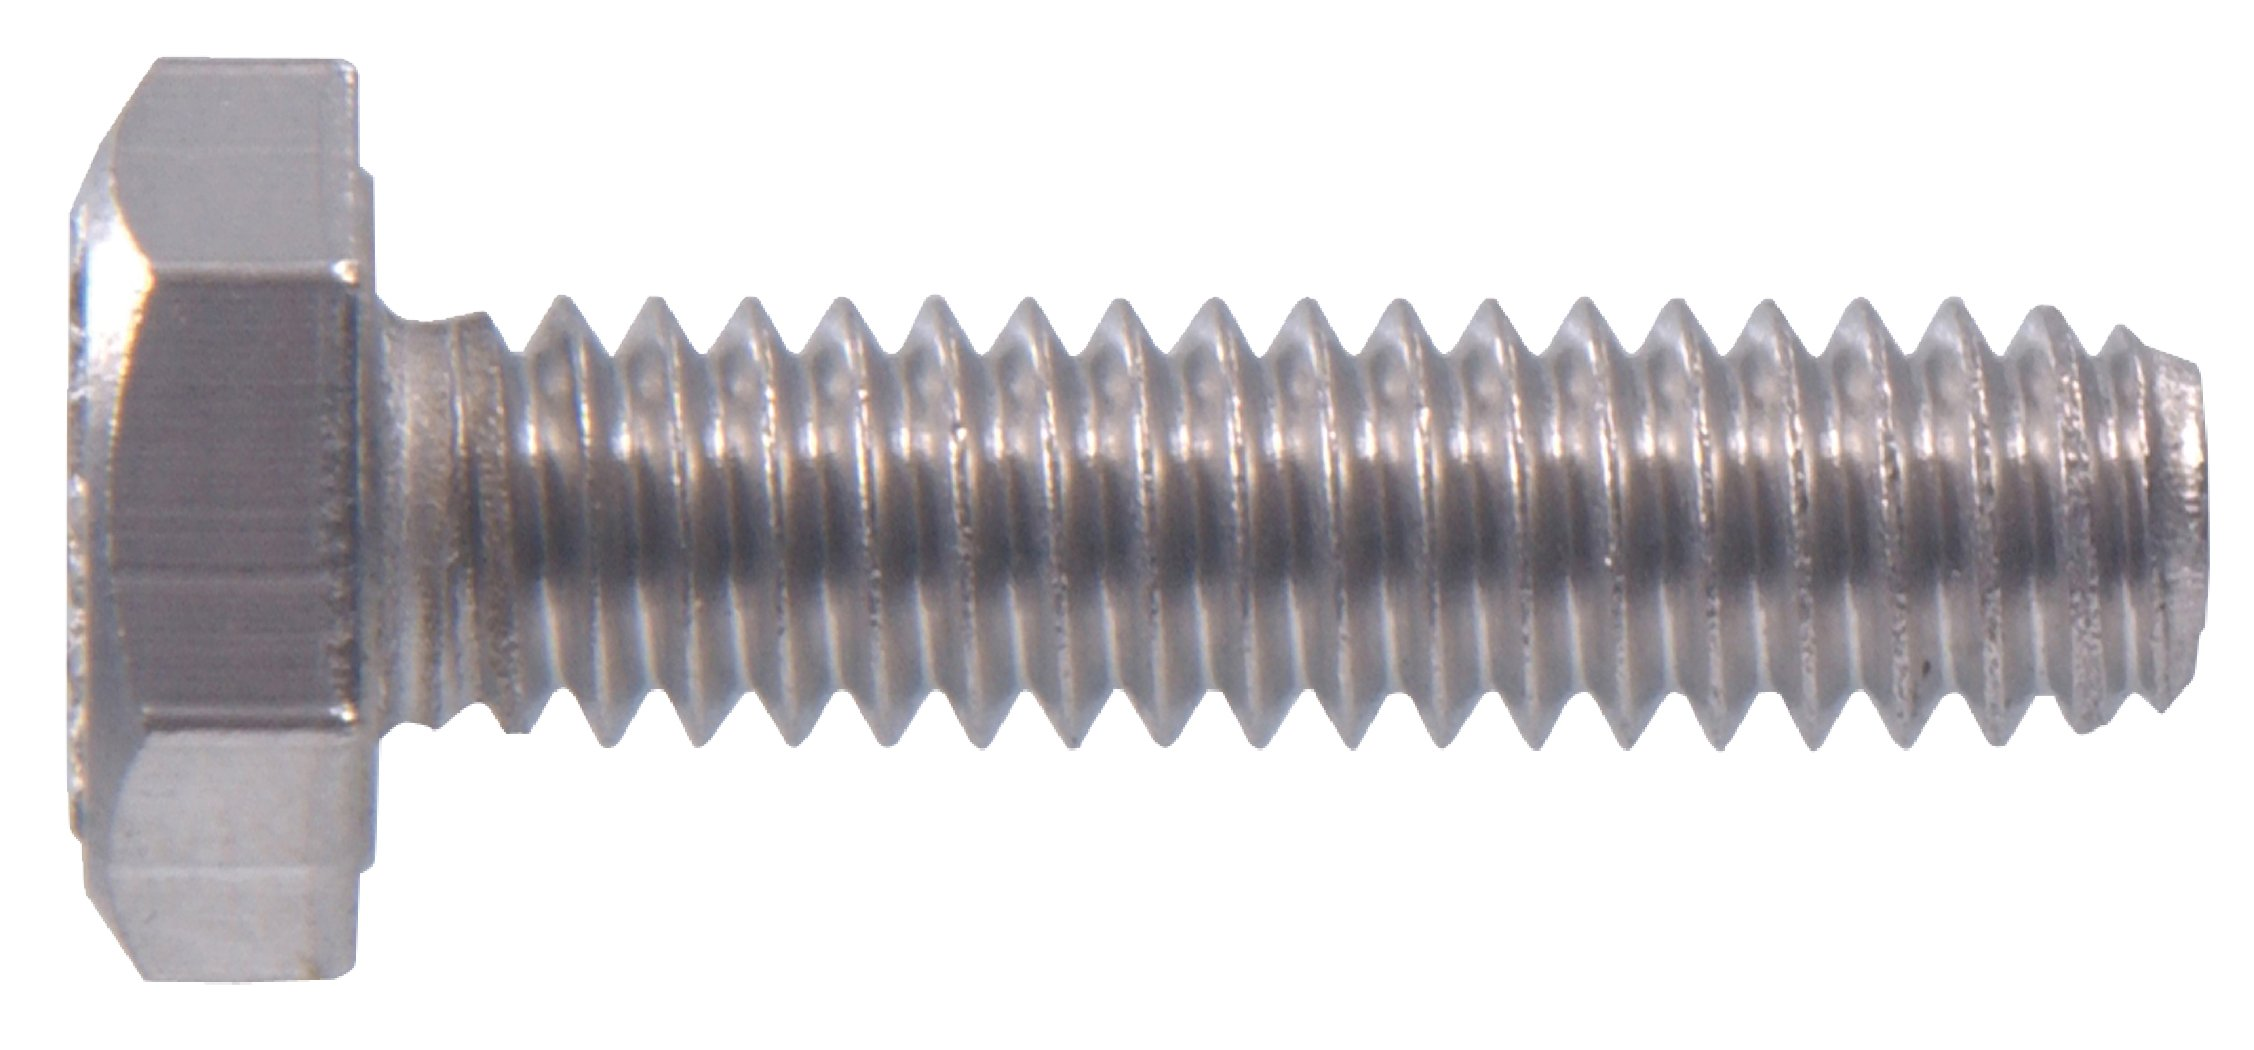 The Hillman Group 831487 1/4 X 1-Inch Stainless Steel Hurricane Track Bolt, 100-Pack by Hillman